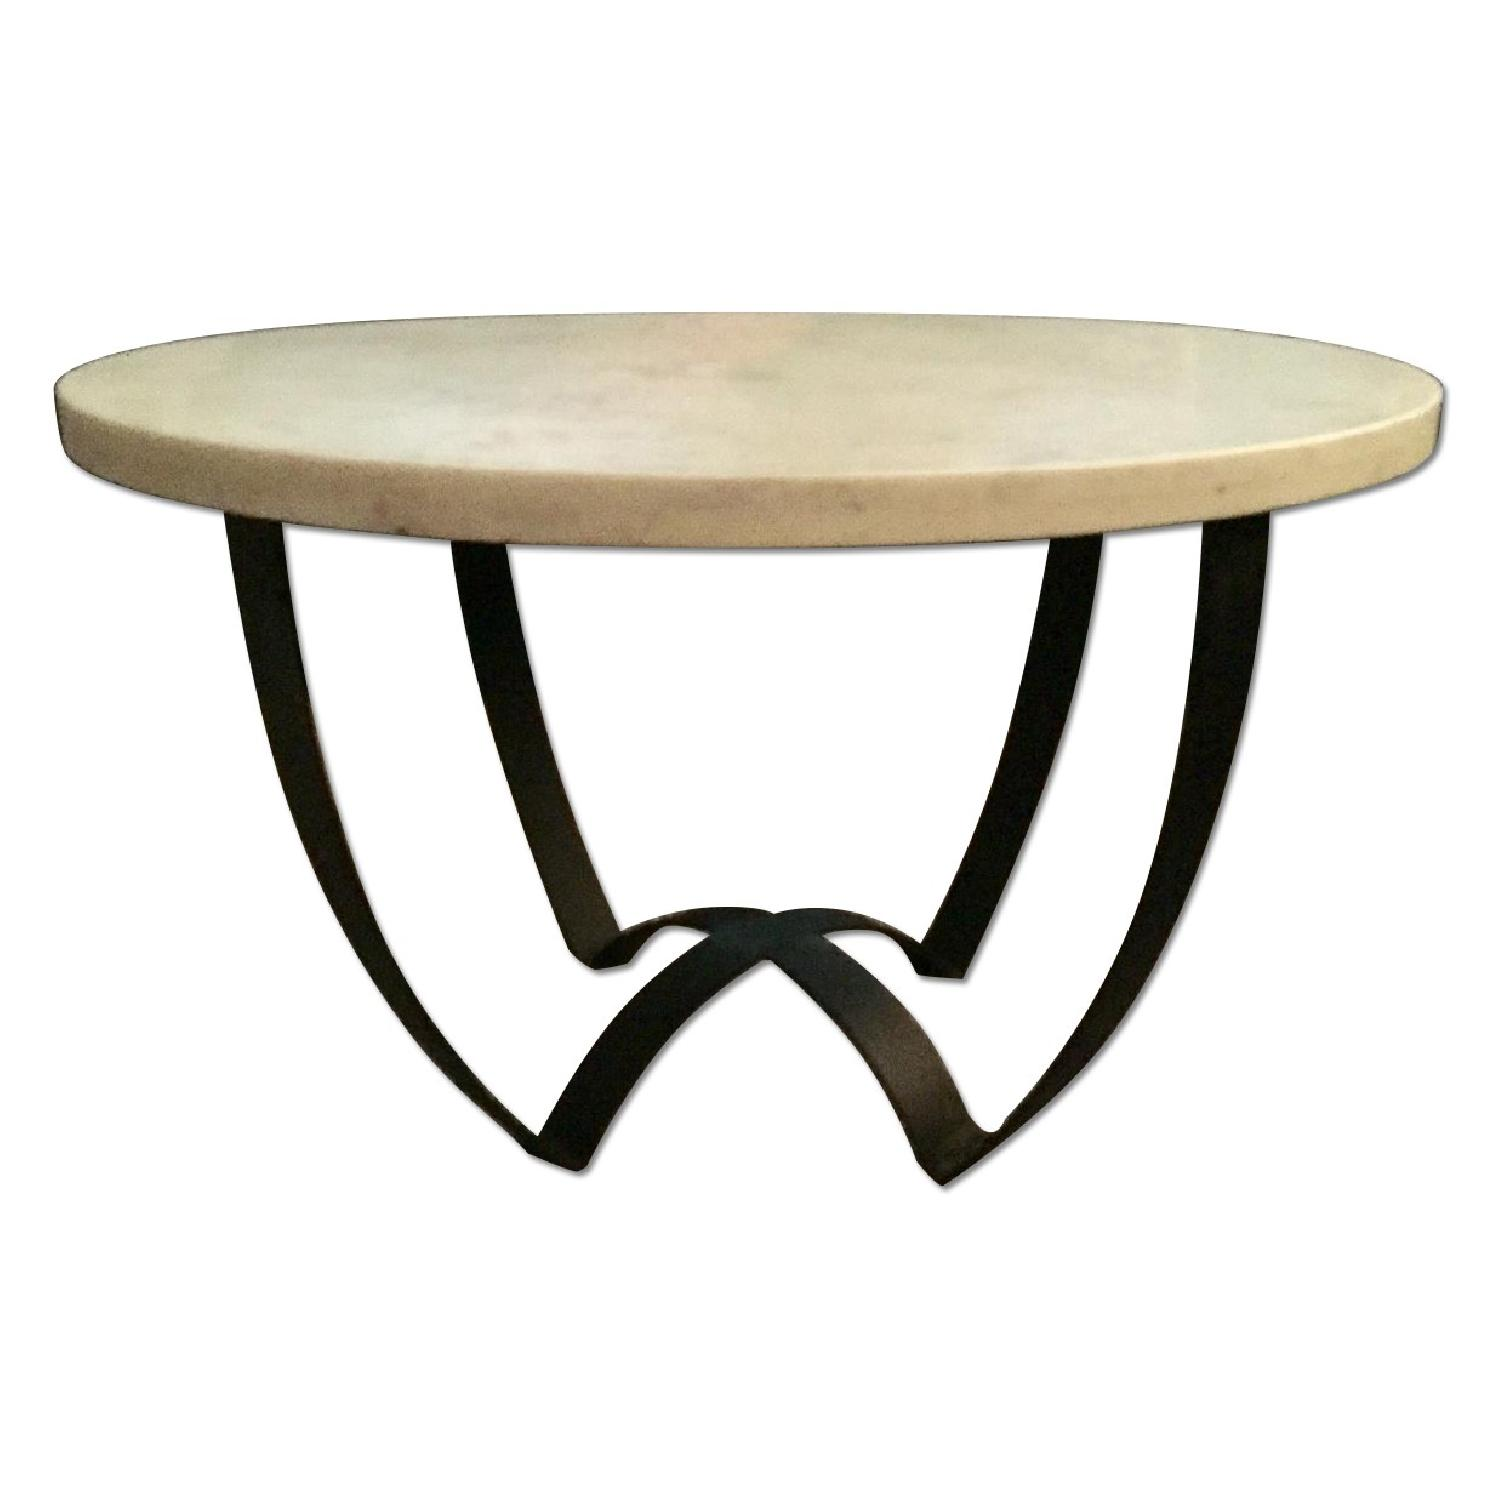 Marble Top Coffee Table w/ Metal Base - image-0